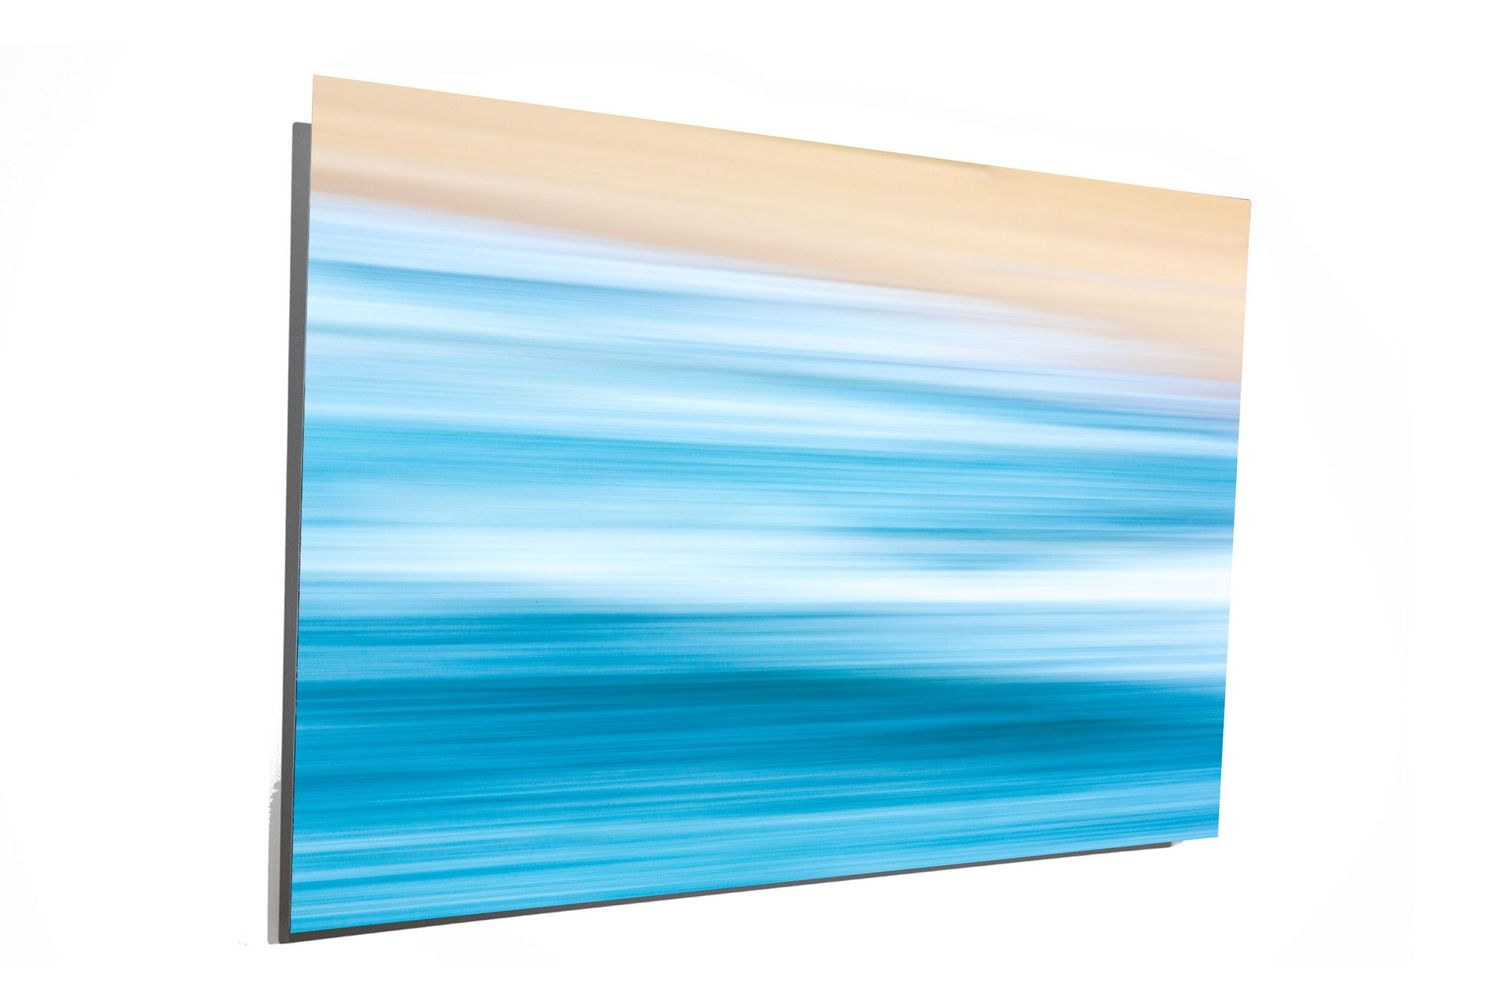 Salty Gallery offers metallic prints of its ocean imagery